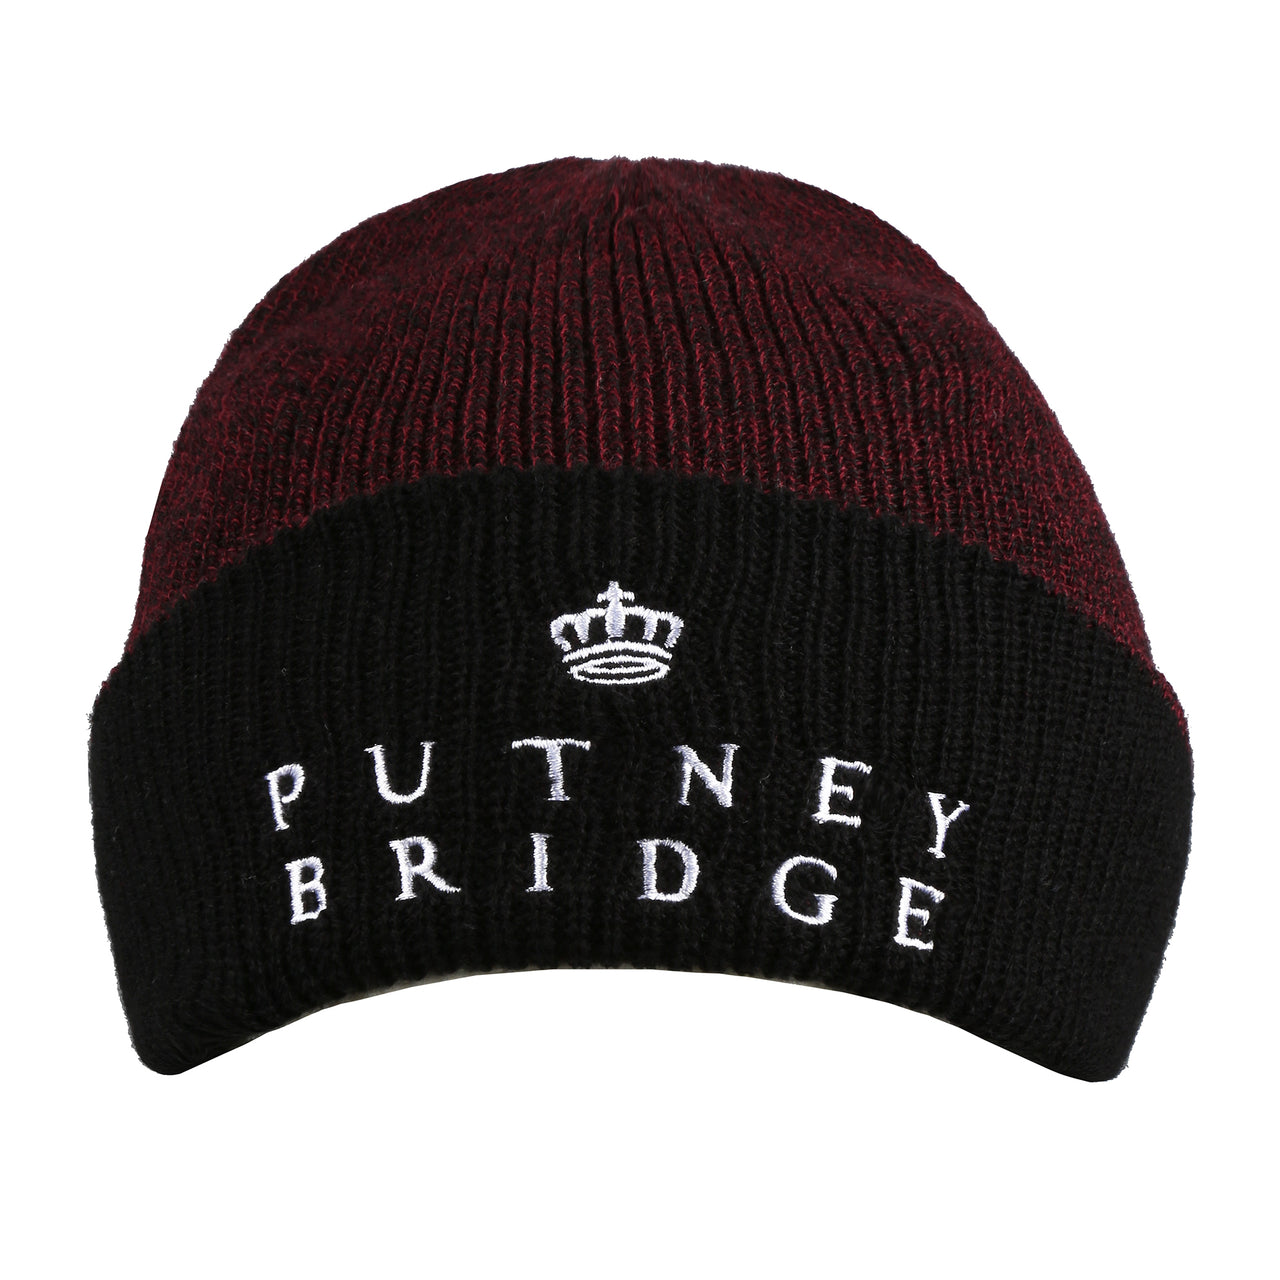 Hardfield Beanie - Antique Burgundy/ Black